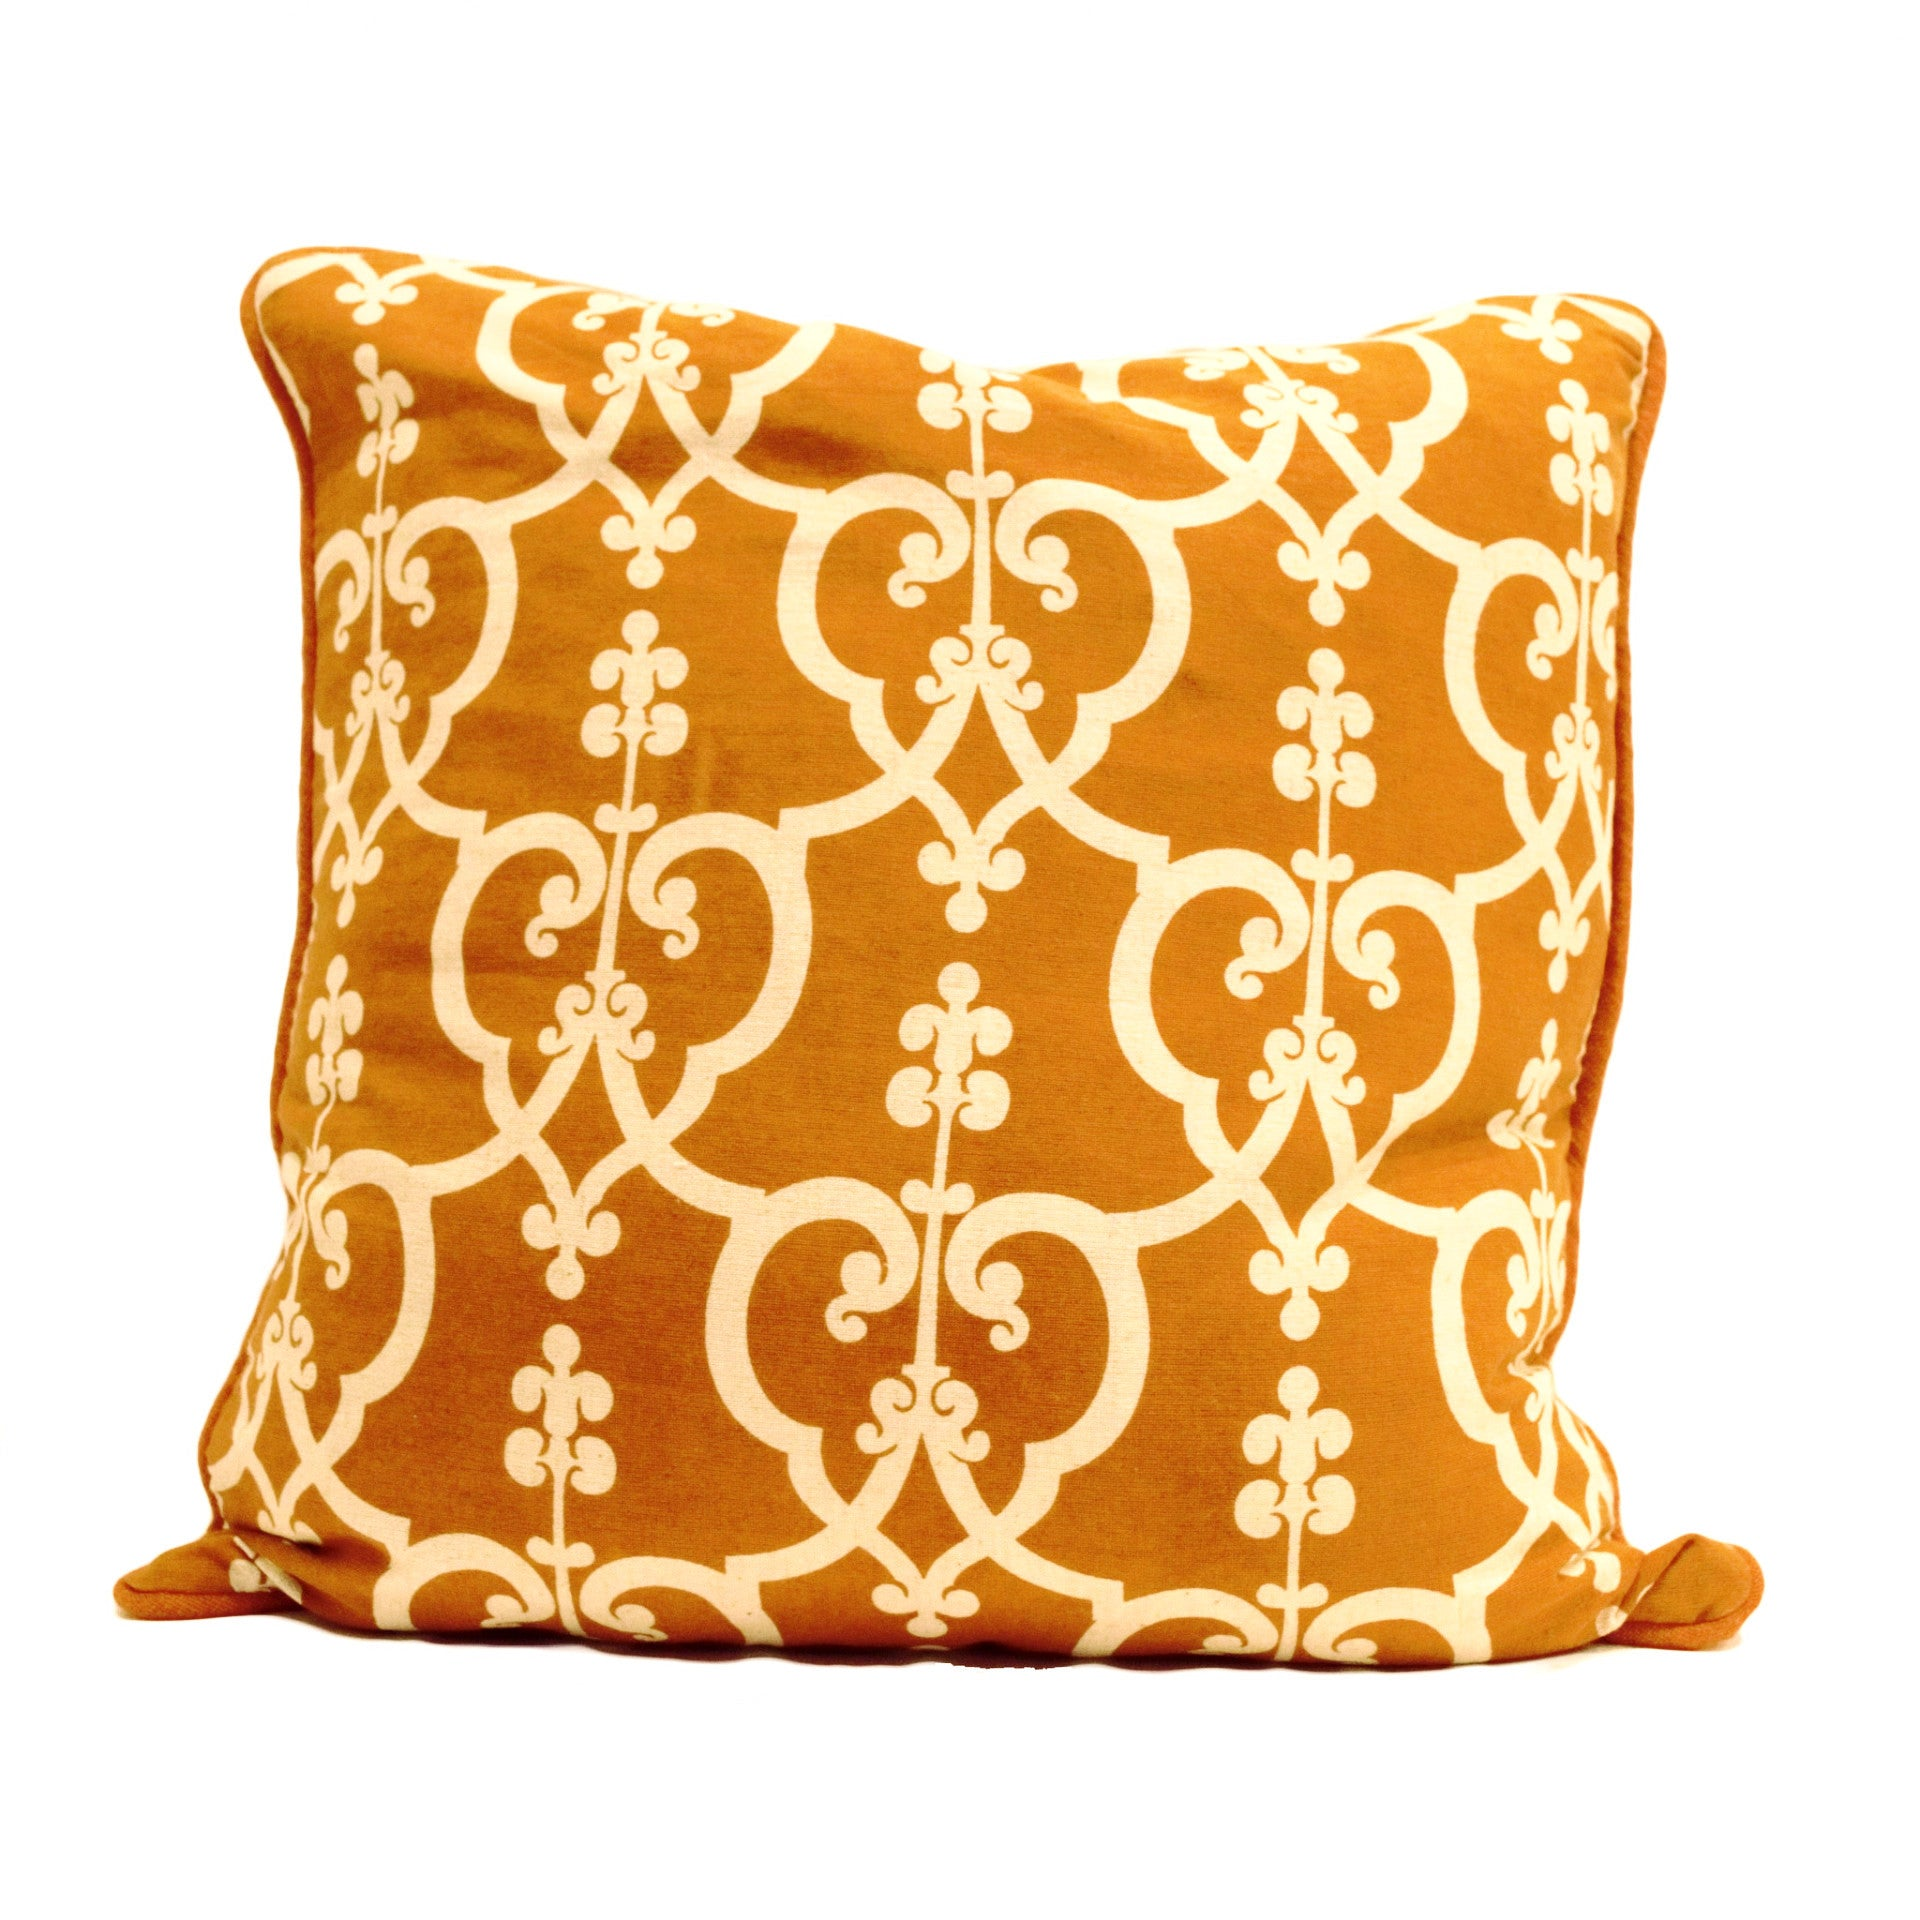 Pillow With Scrolled Design - SARAJANEaccessories